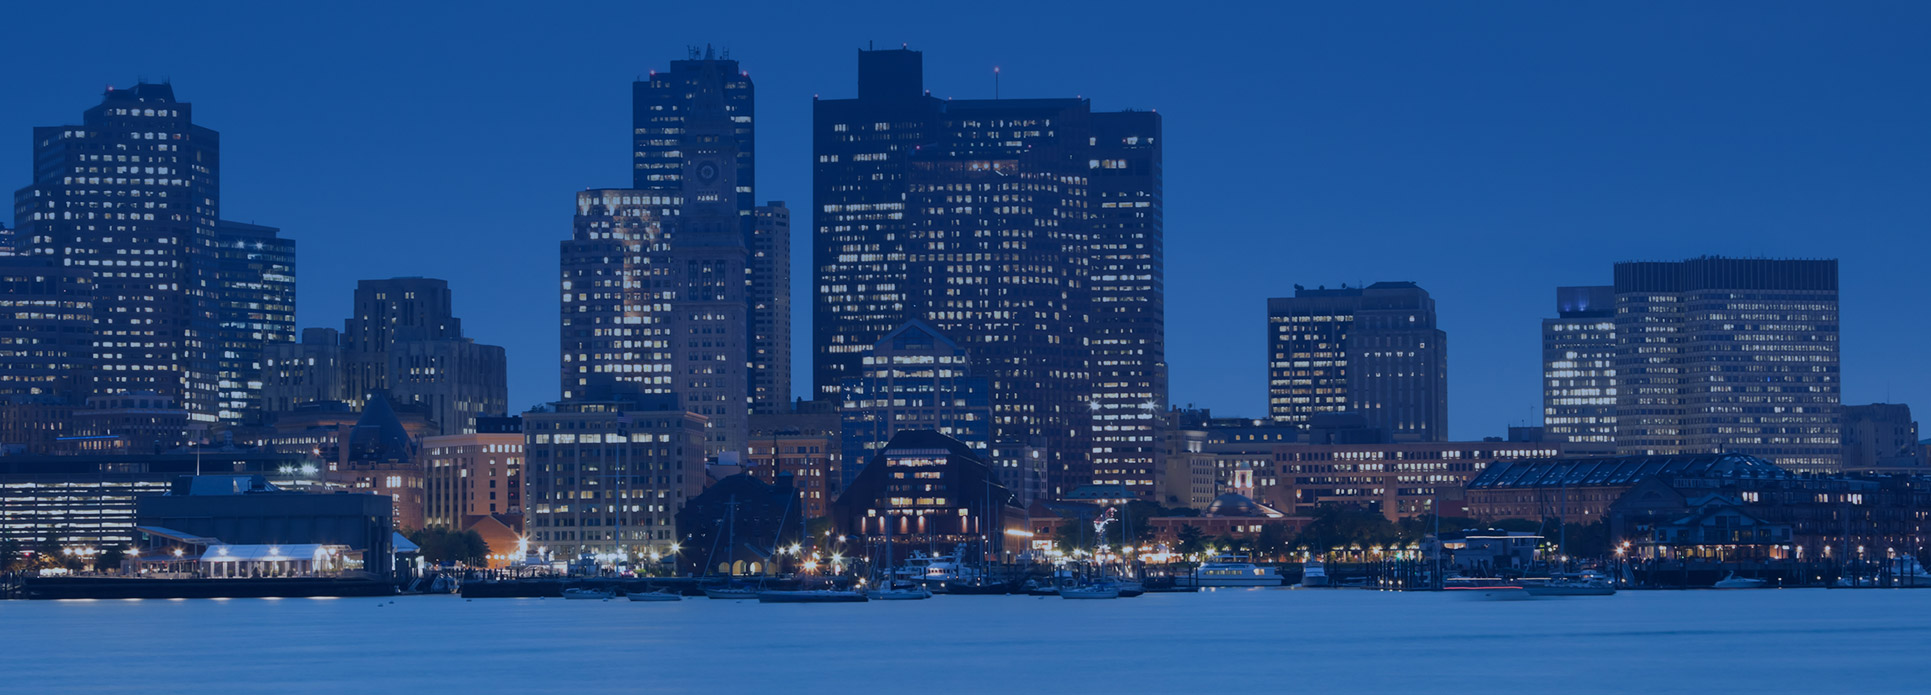 Boston Skyline.jpg